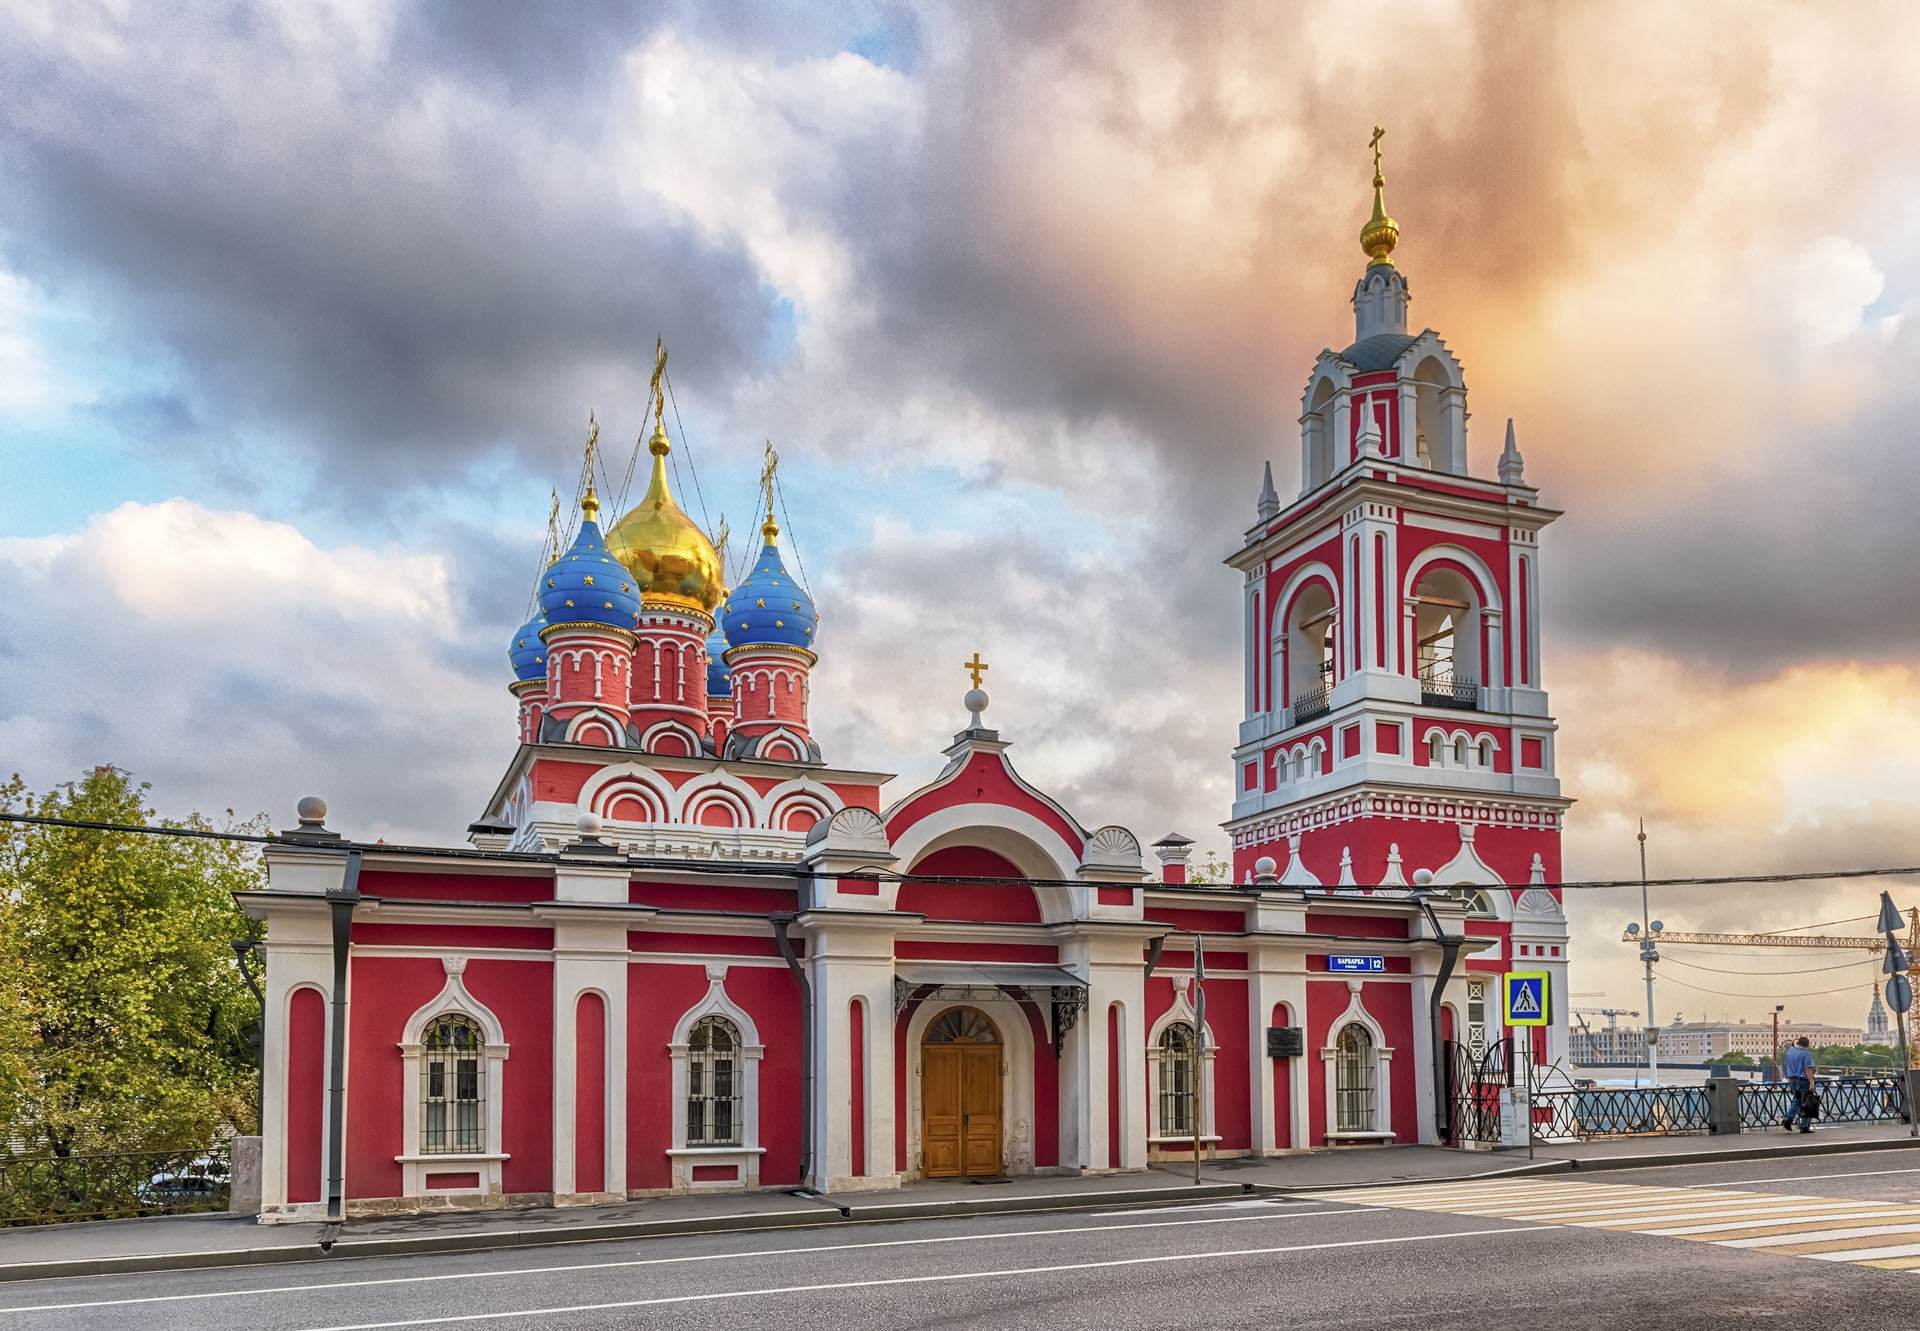 Church of St. George in central Moscow, Russia